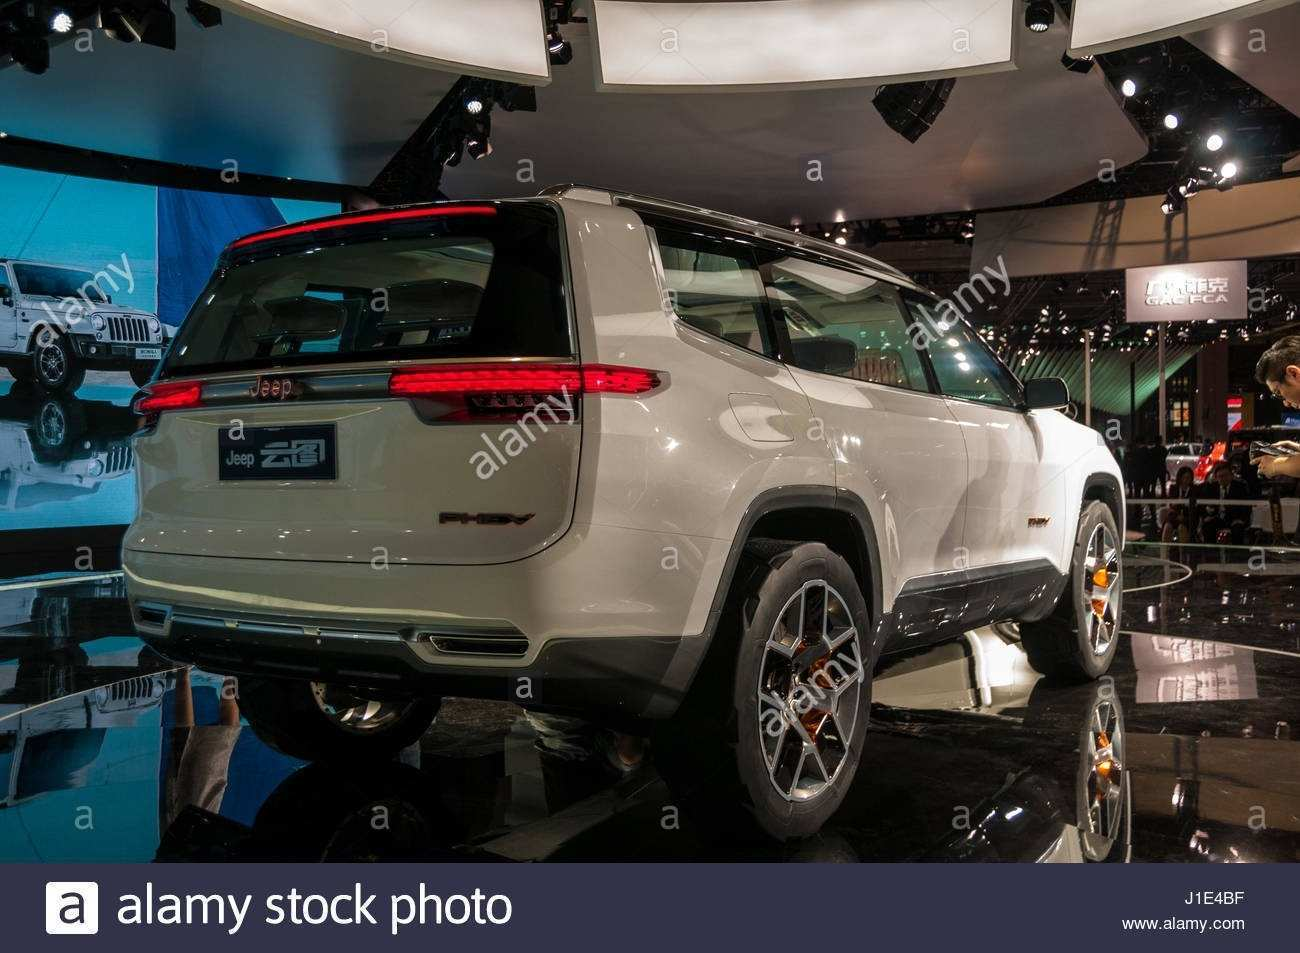 27 All New The Jeep Hybrid 2019 Release Date Specs with The Jeep Hybrid 2019 Release Date